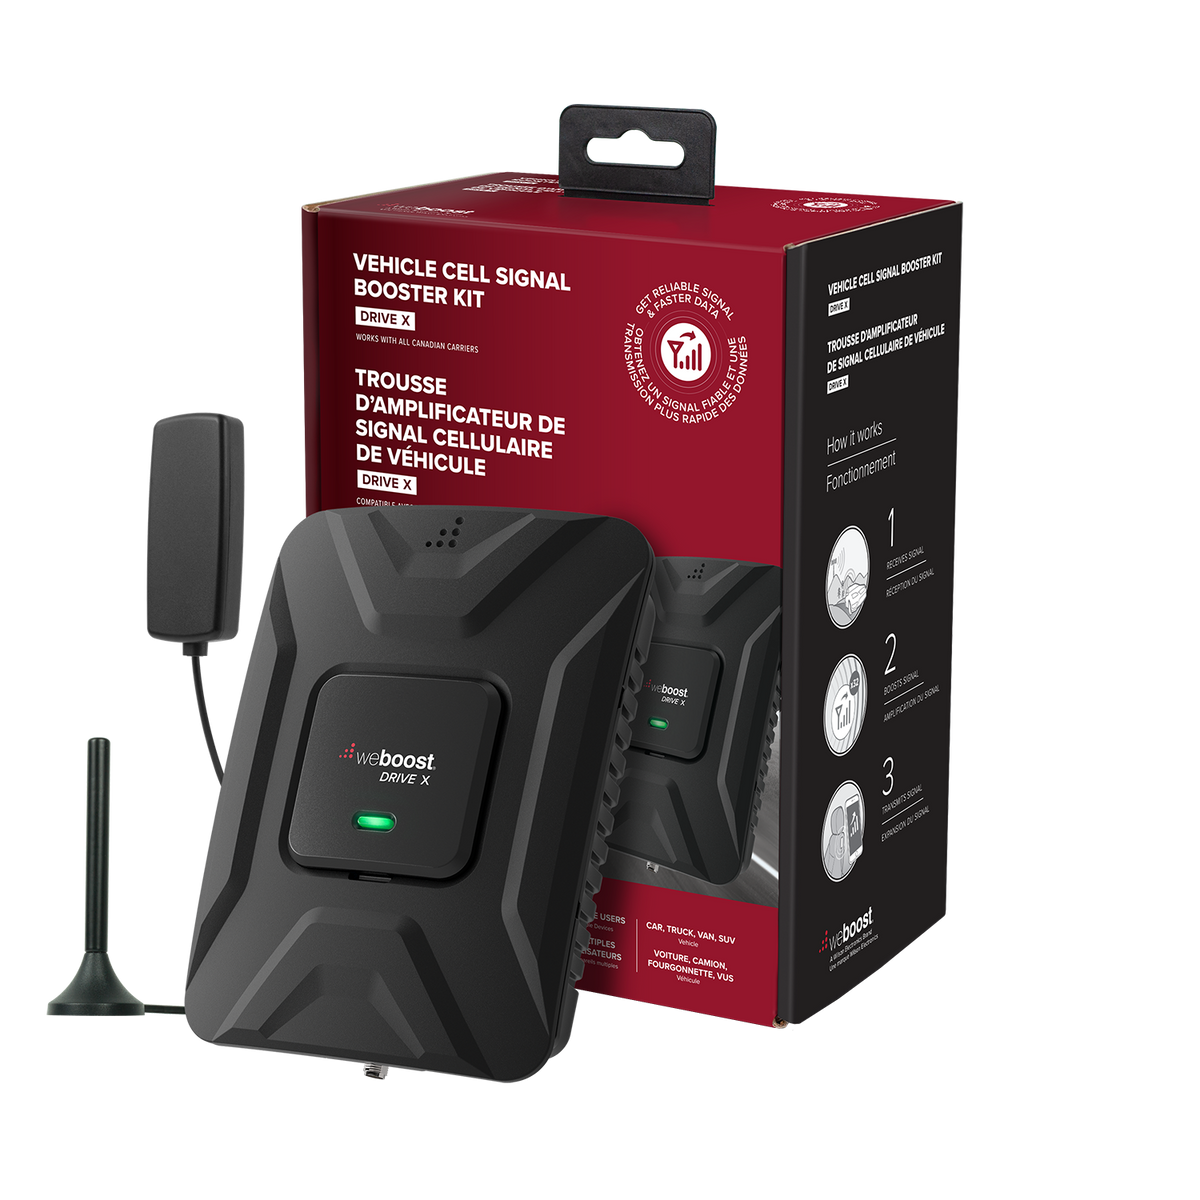 Wilson weBoost Drive X Cell Phone Signal Booster Kit